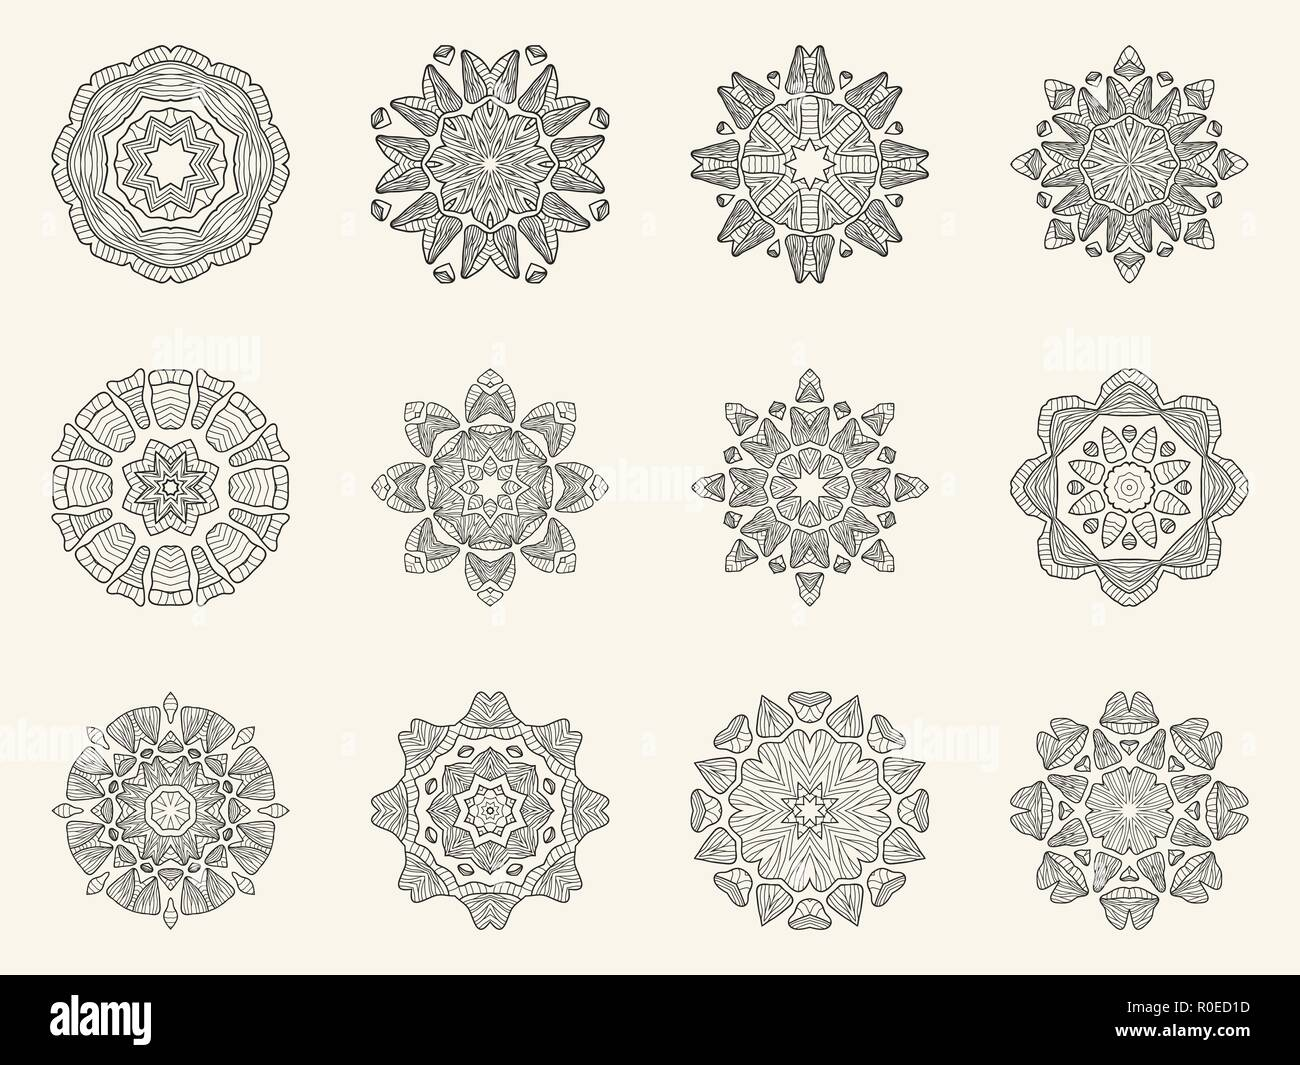 Set Circular Patterns Vector Illustration Imágenes De Stock & Set ...